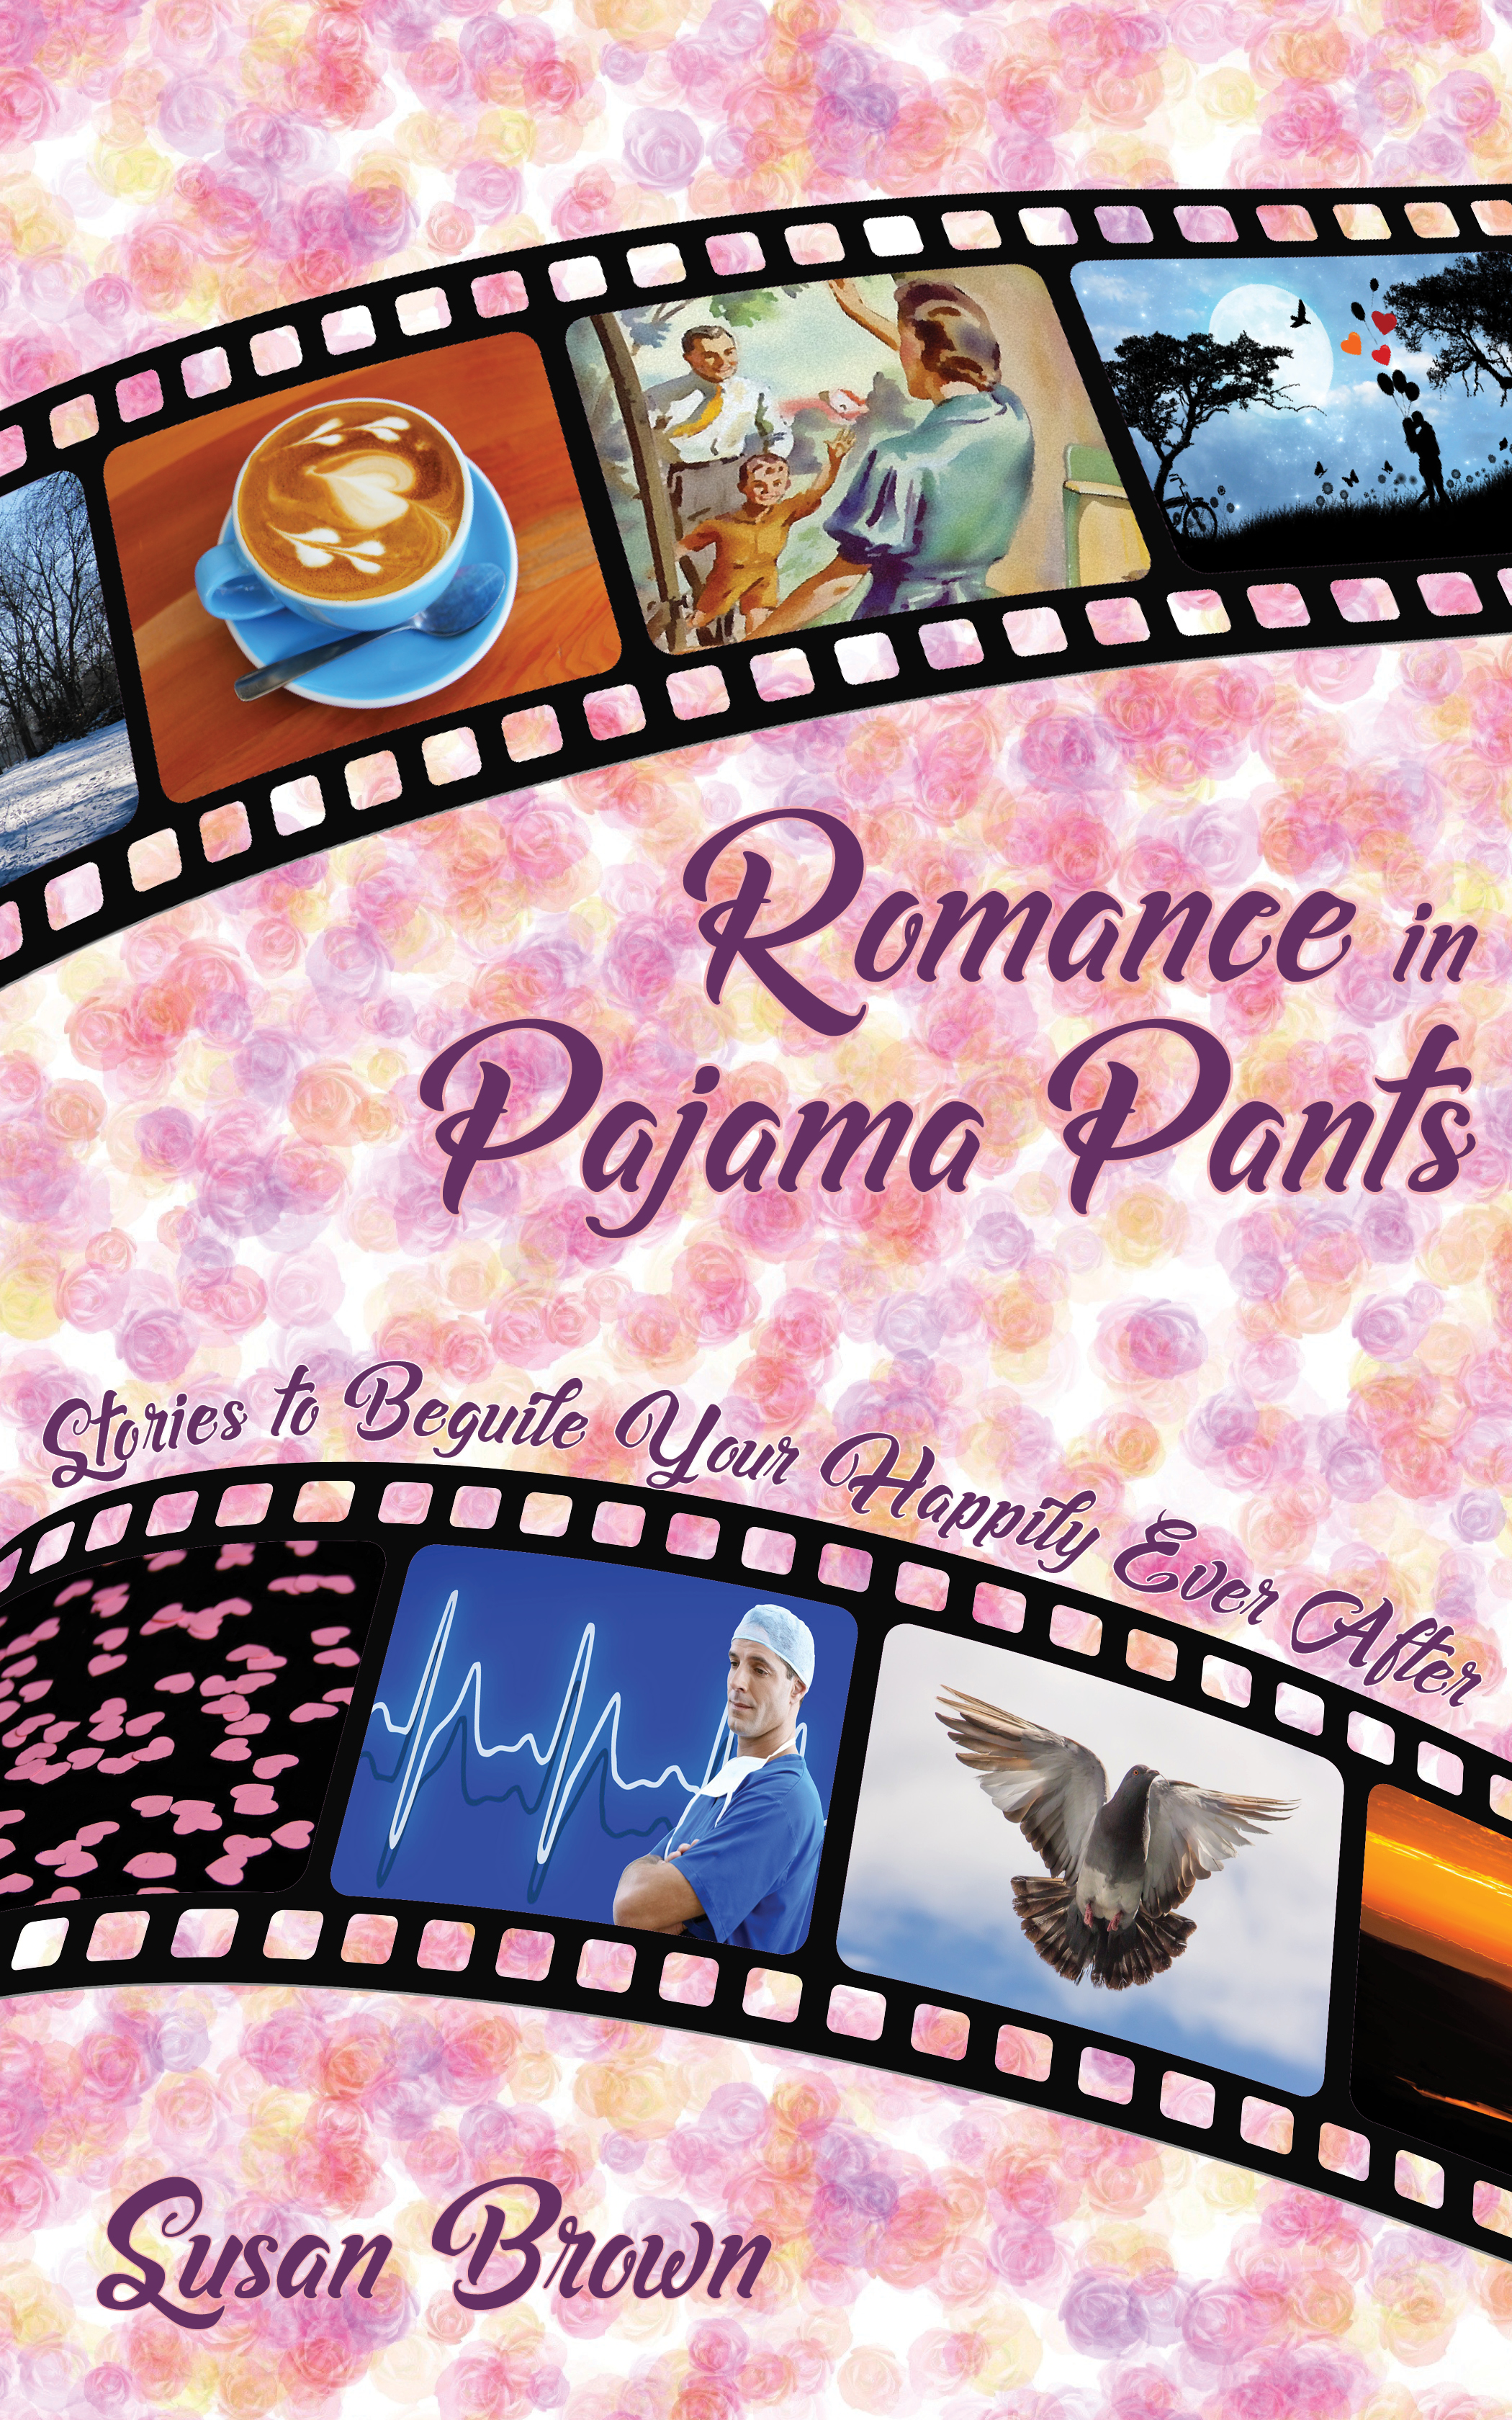 Romance in Pajama Pants by Susan Brown